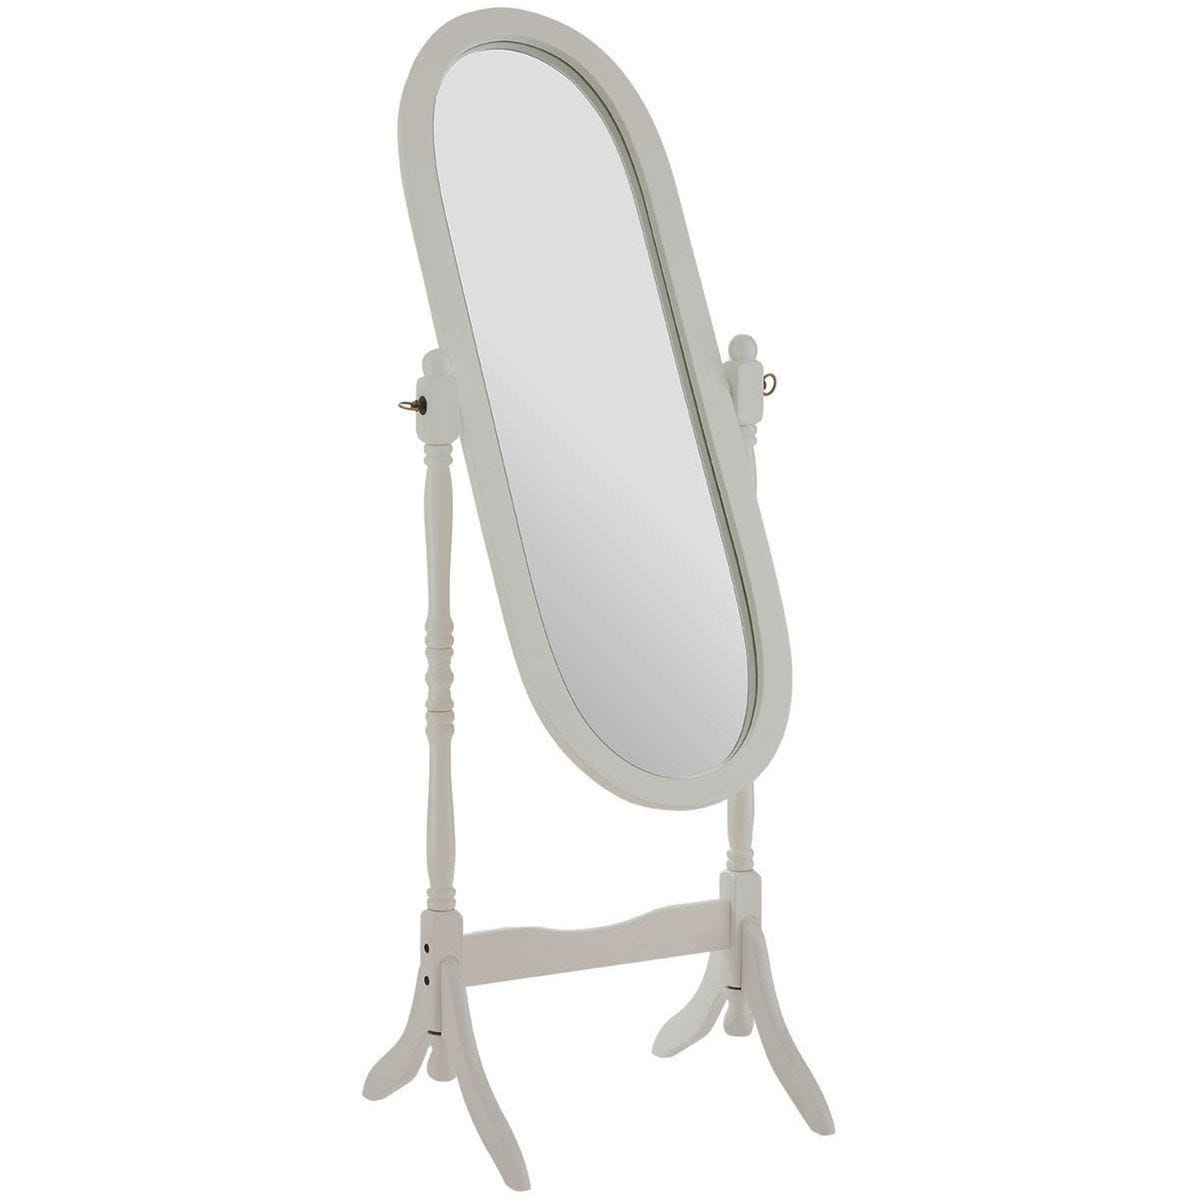 Premier Housewares Oval Cheval Mirror with White Wood Frame